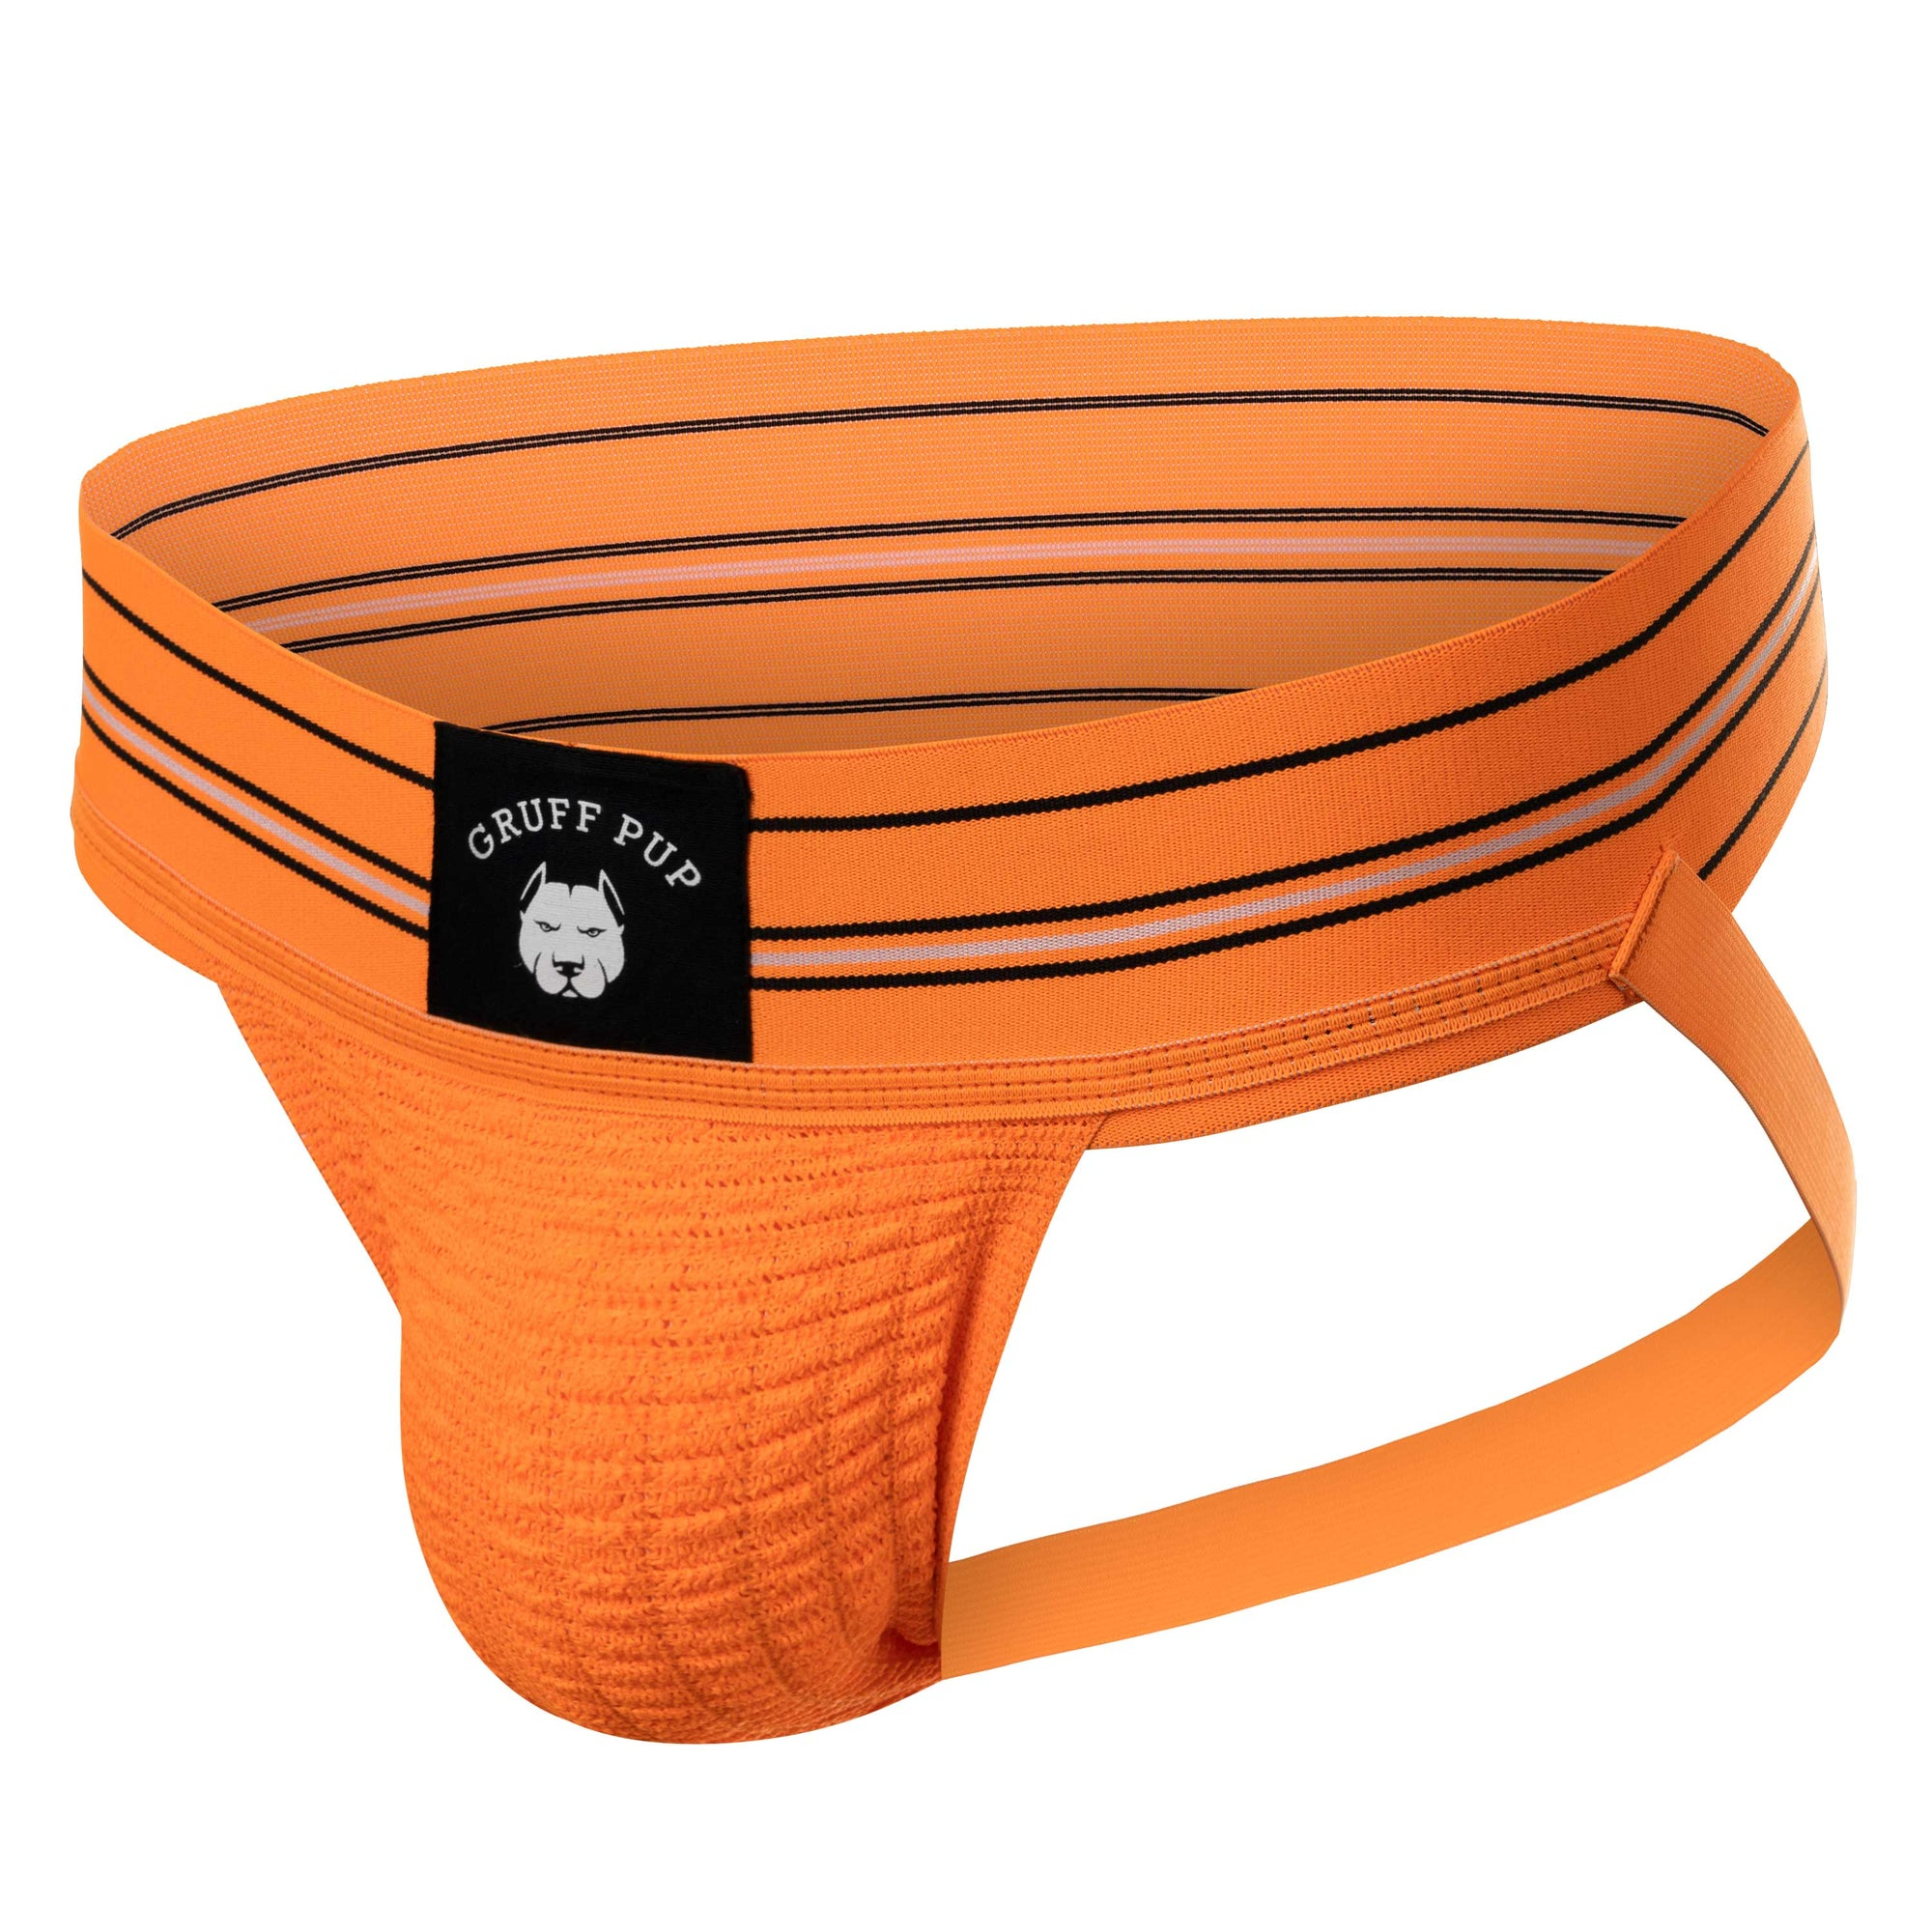 Gruff Pup Quarterback Jock - Orange - Striped